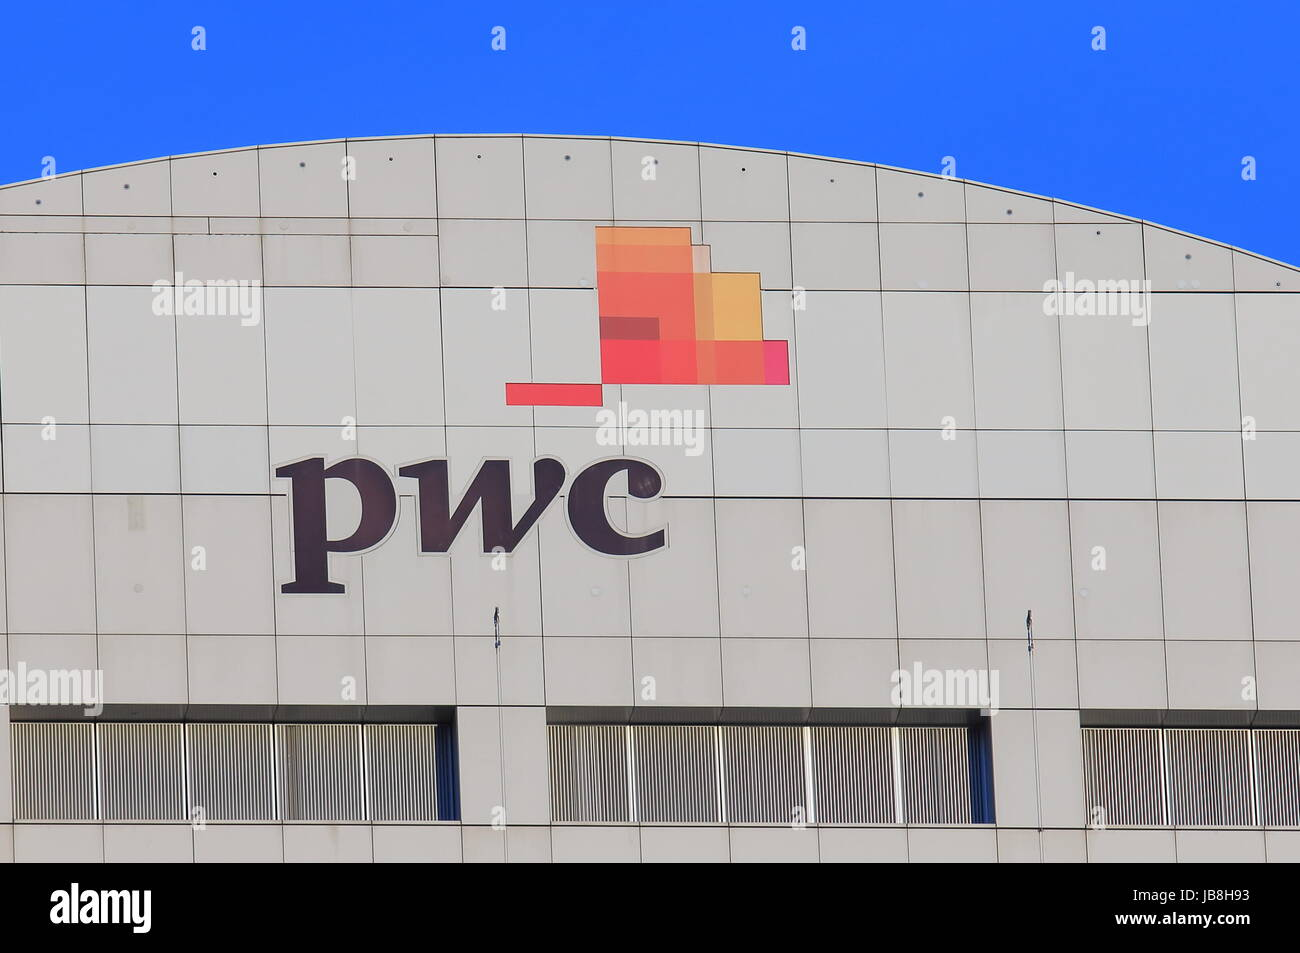 PwC. PwC the second largest professional services firm in the world headquartered in London. - Stock Image